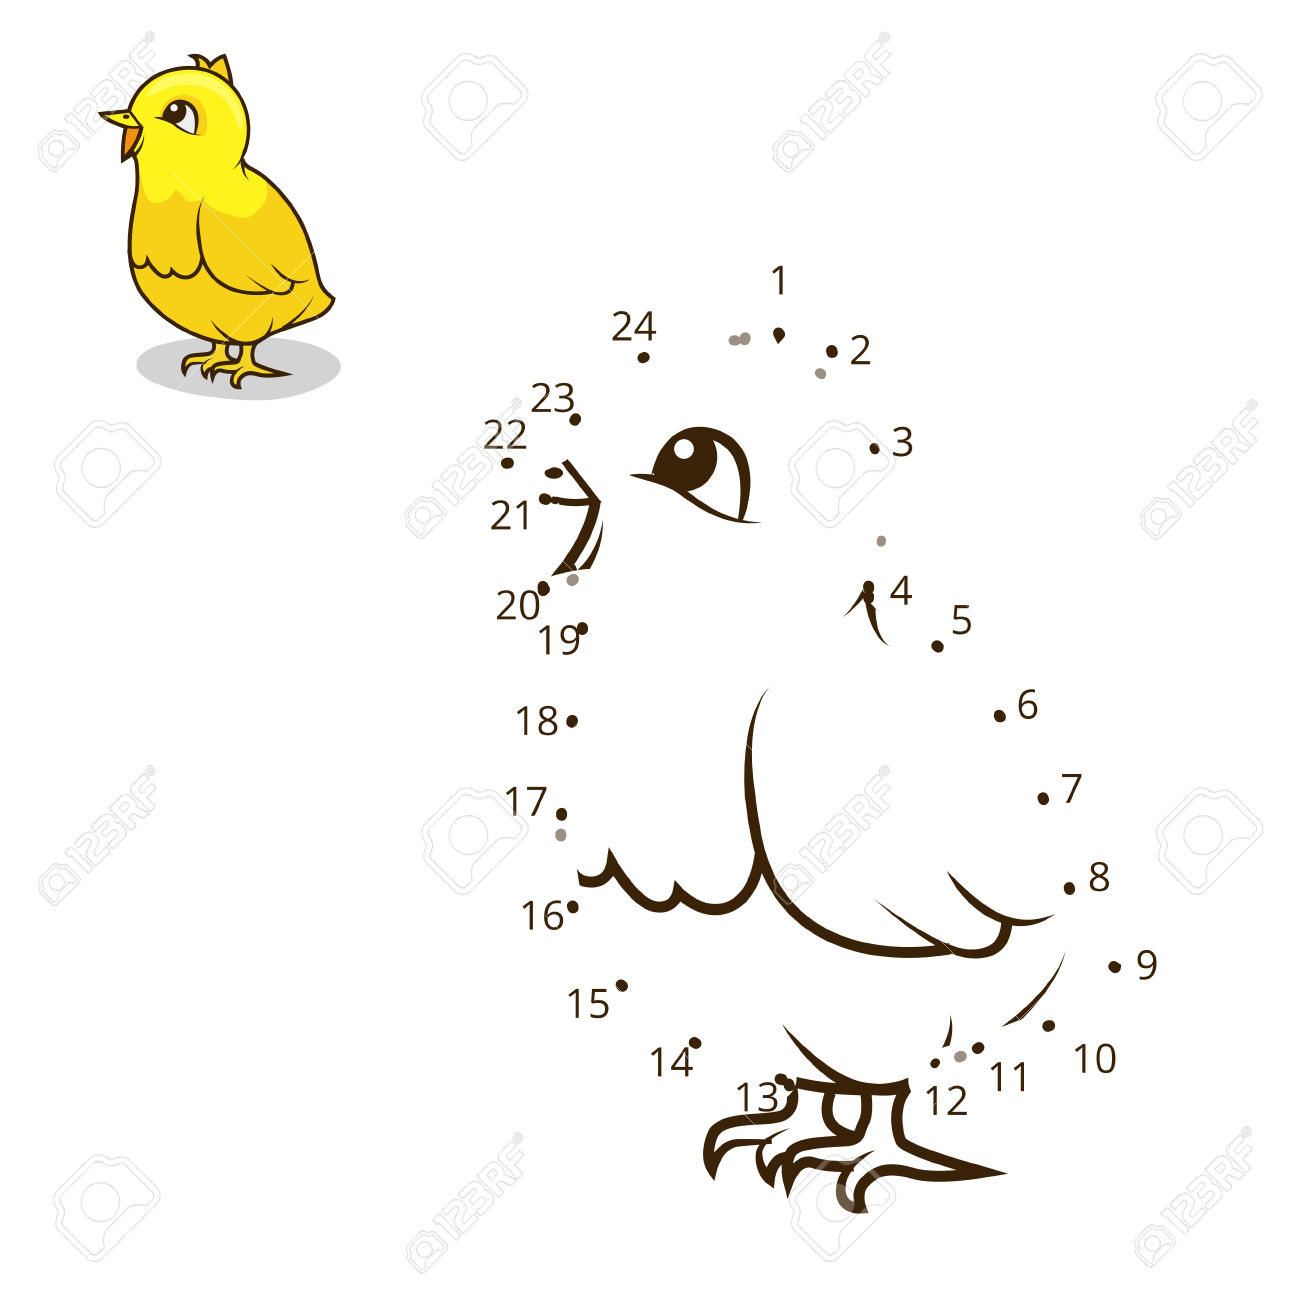 Connect The Dots Game Chicken Cartoon Colorful Vector Illustration.